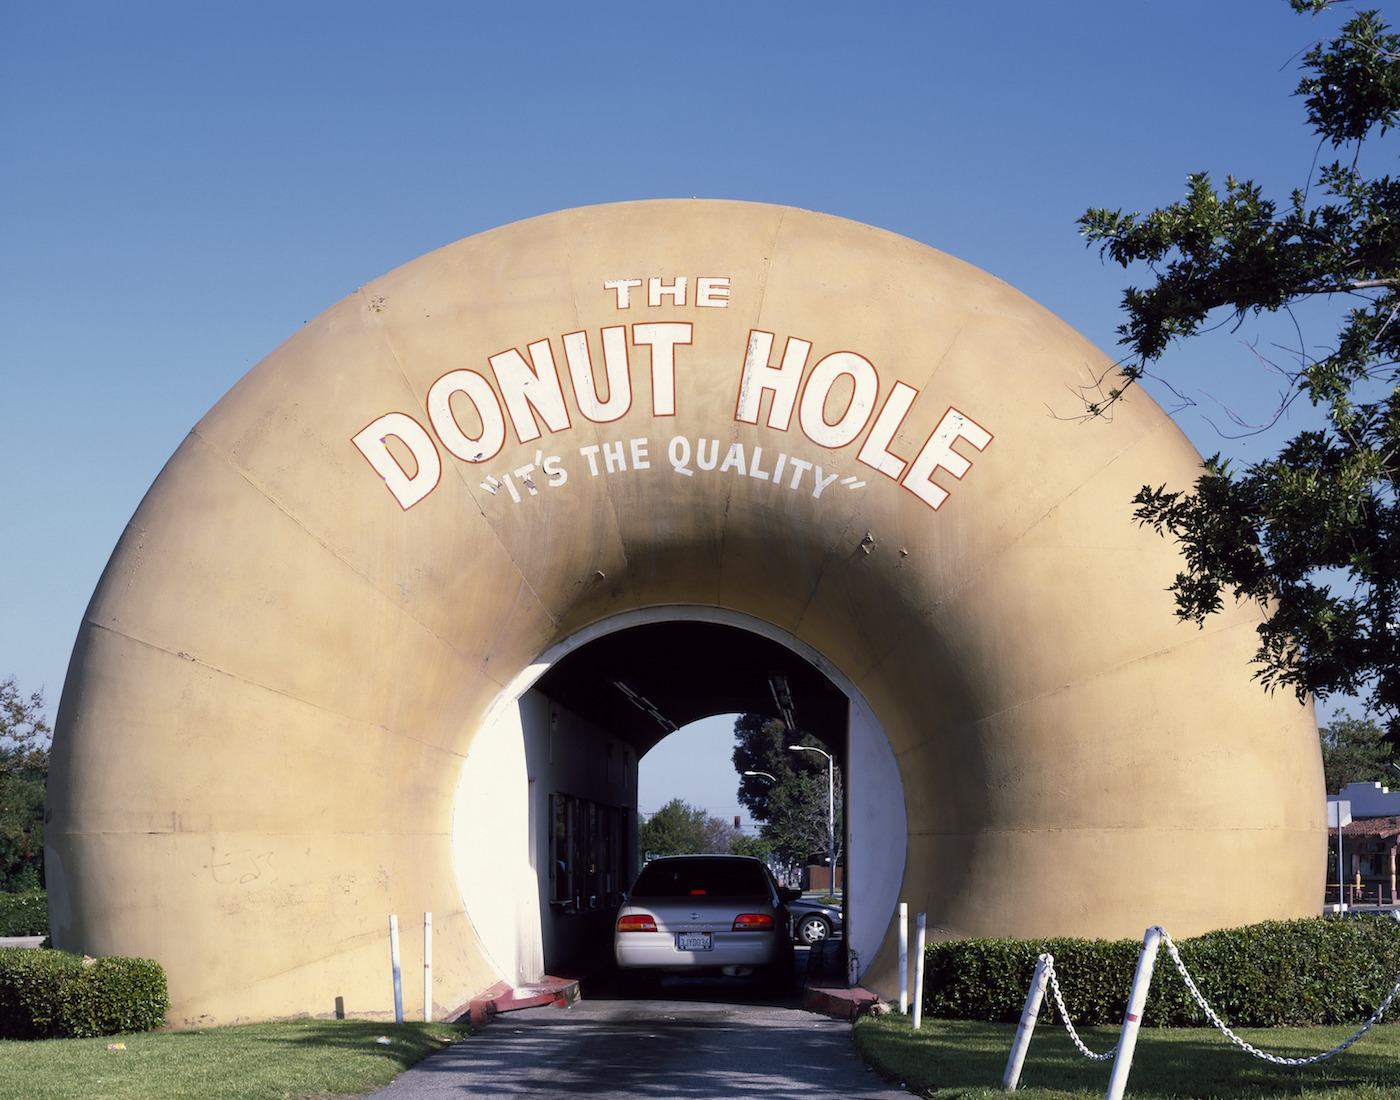 The Donut Hole drive-through in La Puente, California (photo by Carol M. Highsmith/Library of Congress)